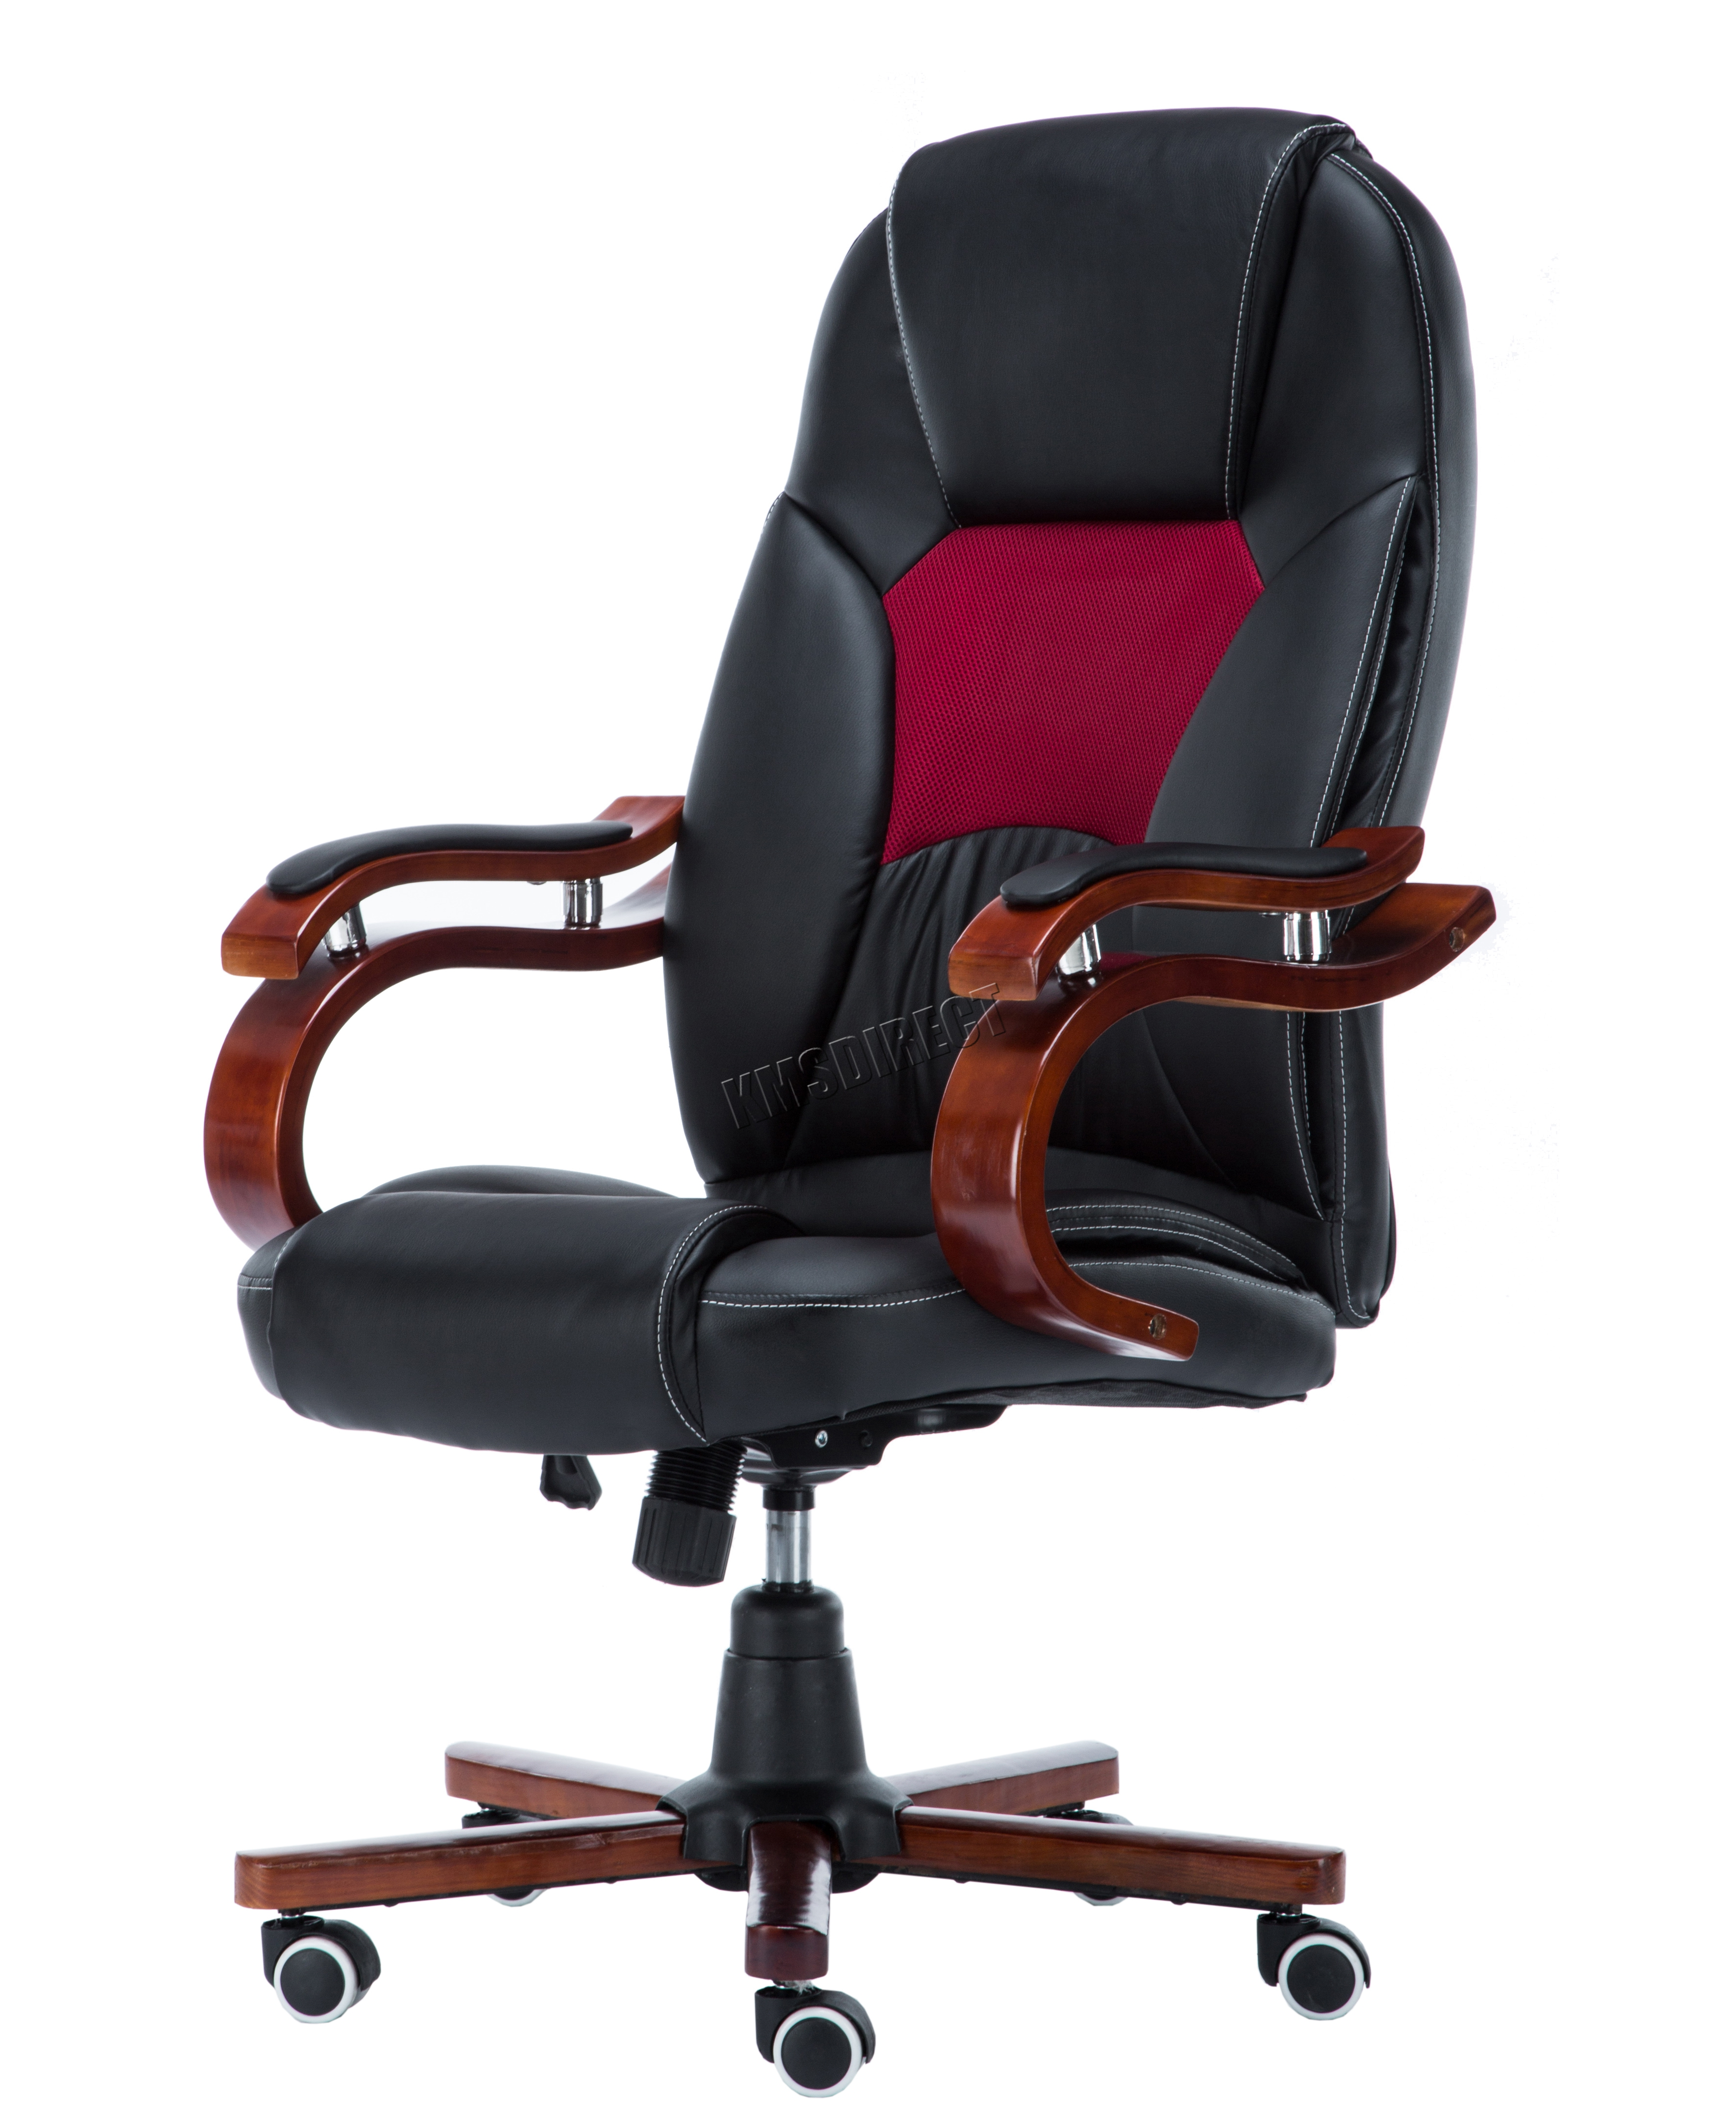 home office chair no wheels uk infant sit up westwood computer executive desk pu leather